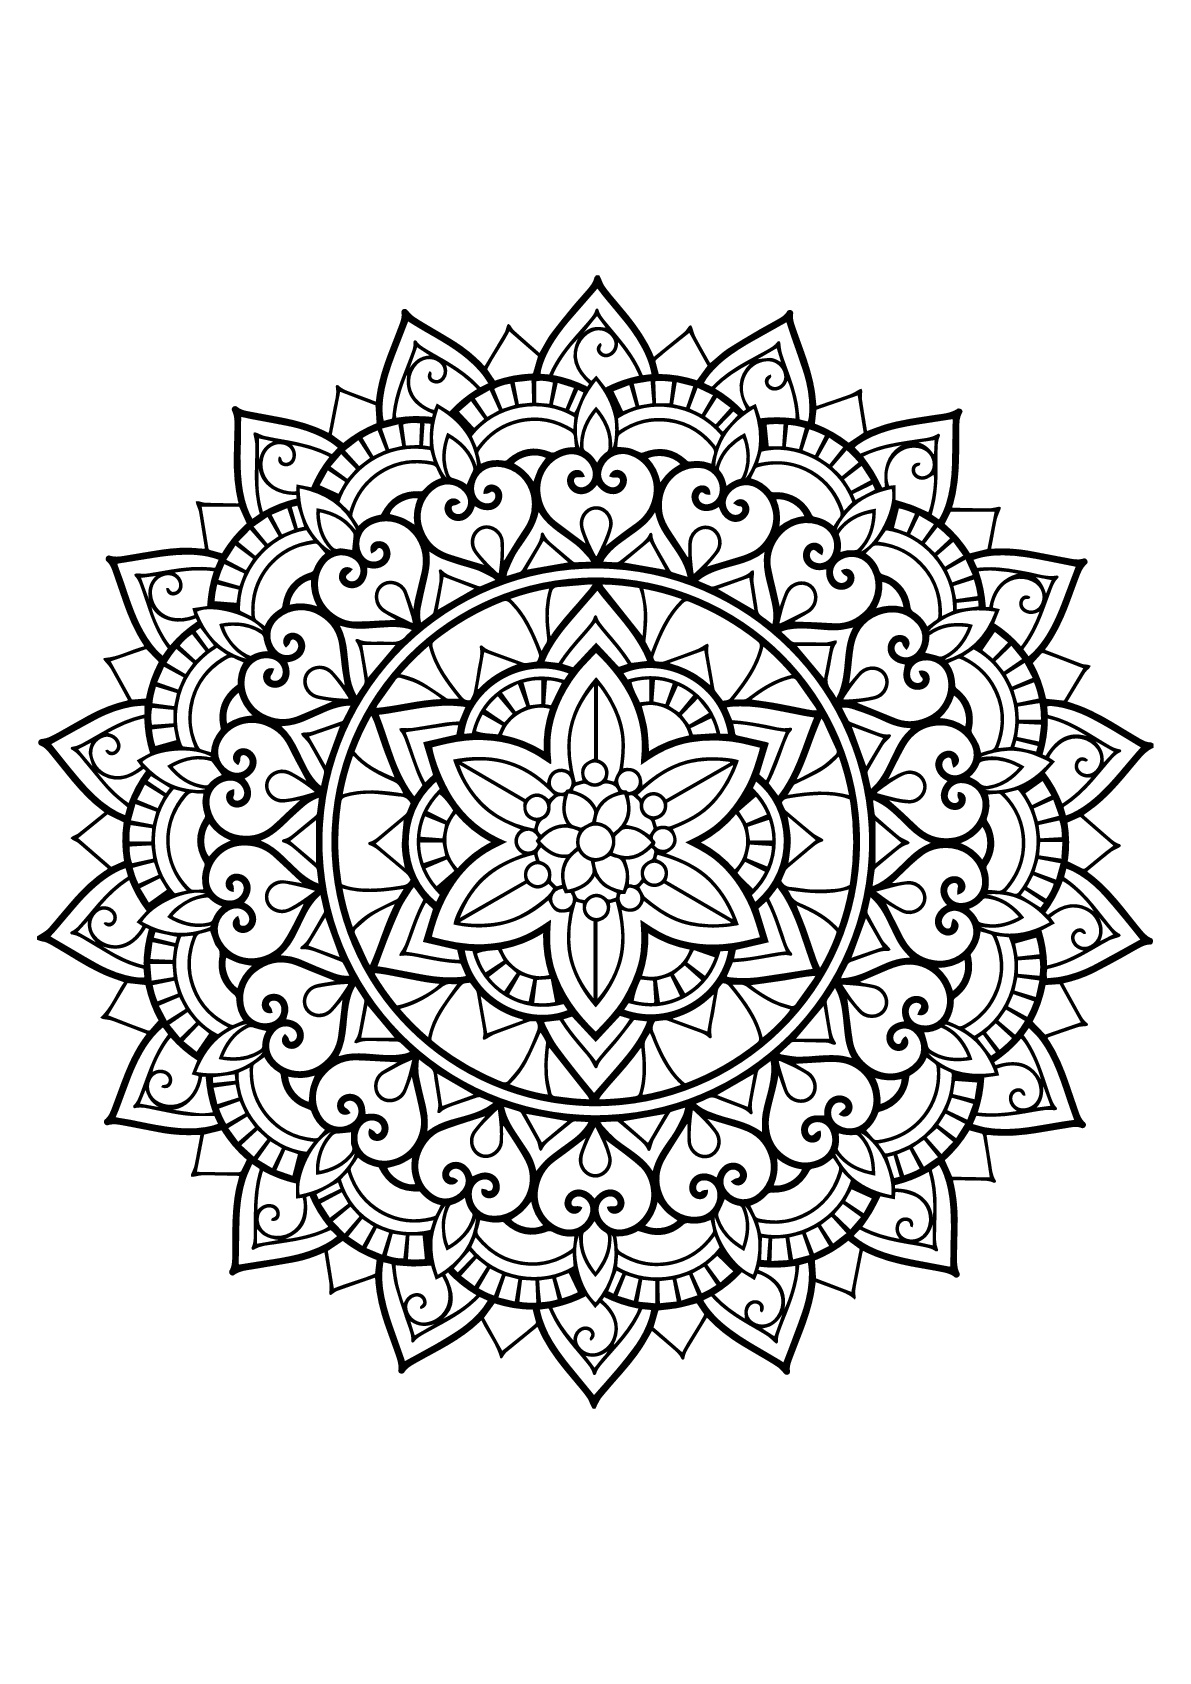 Mandala from free coloring books for adults 29 - M&alas ...